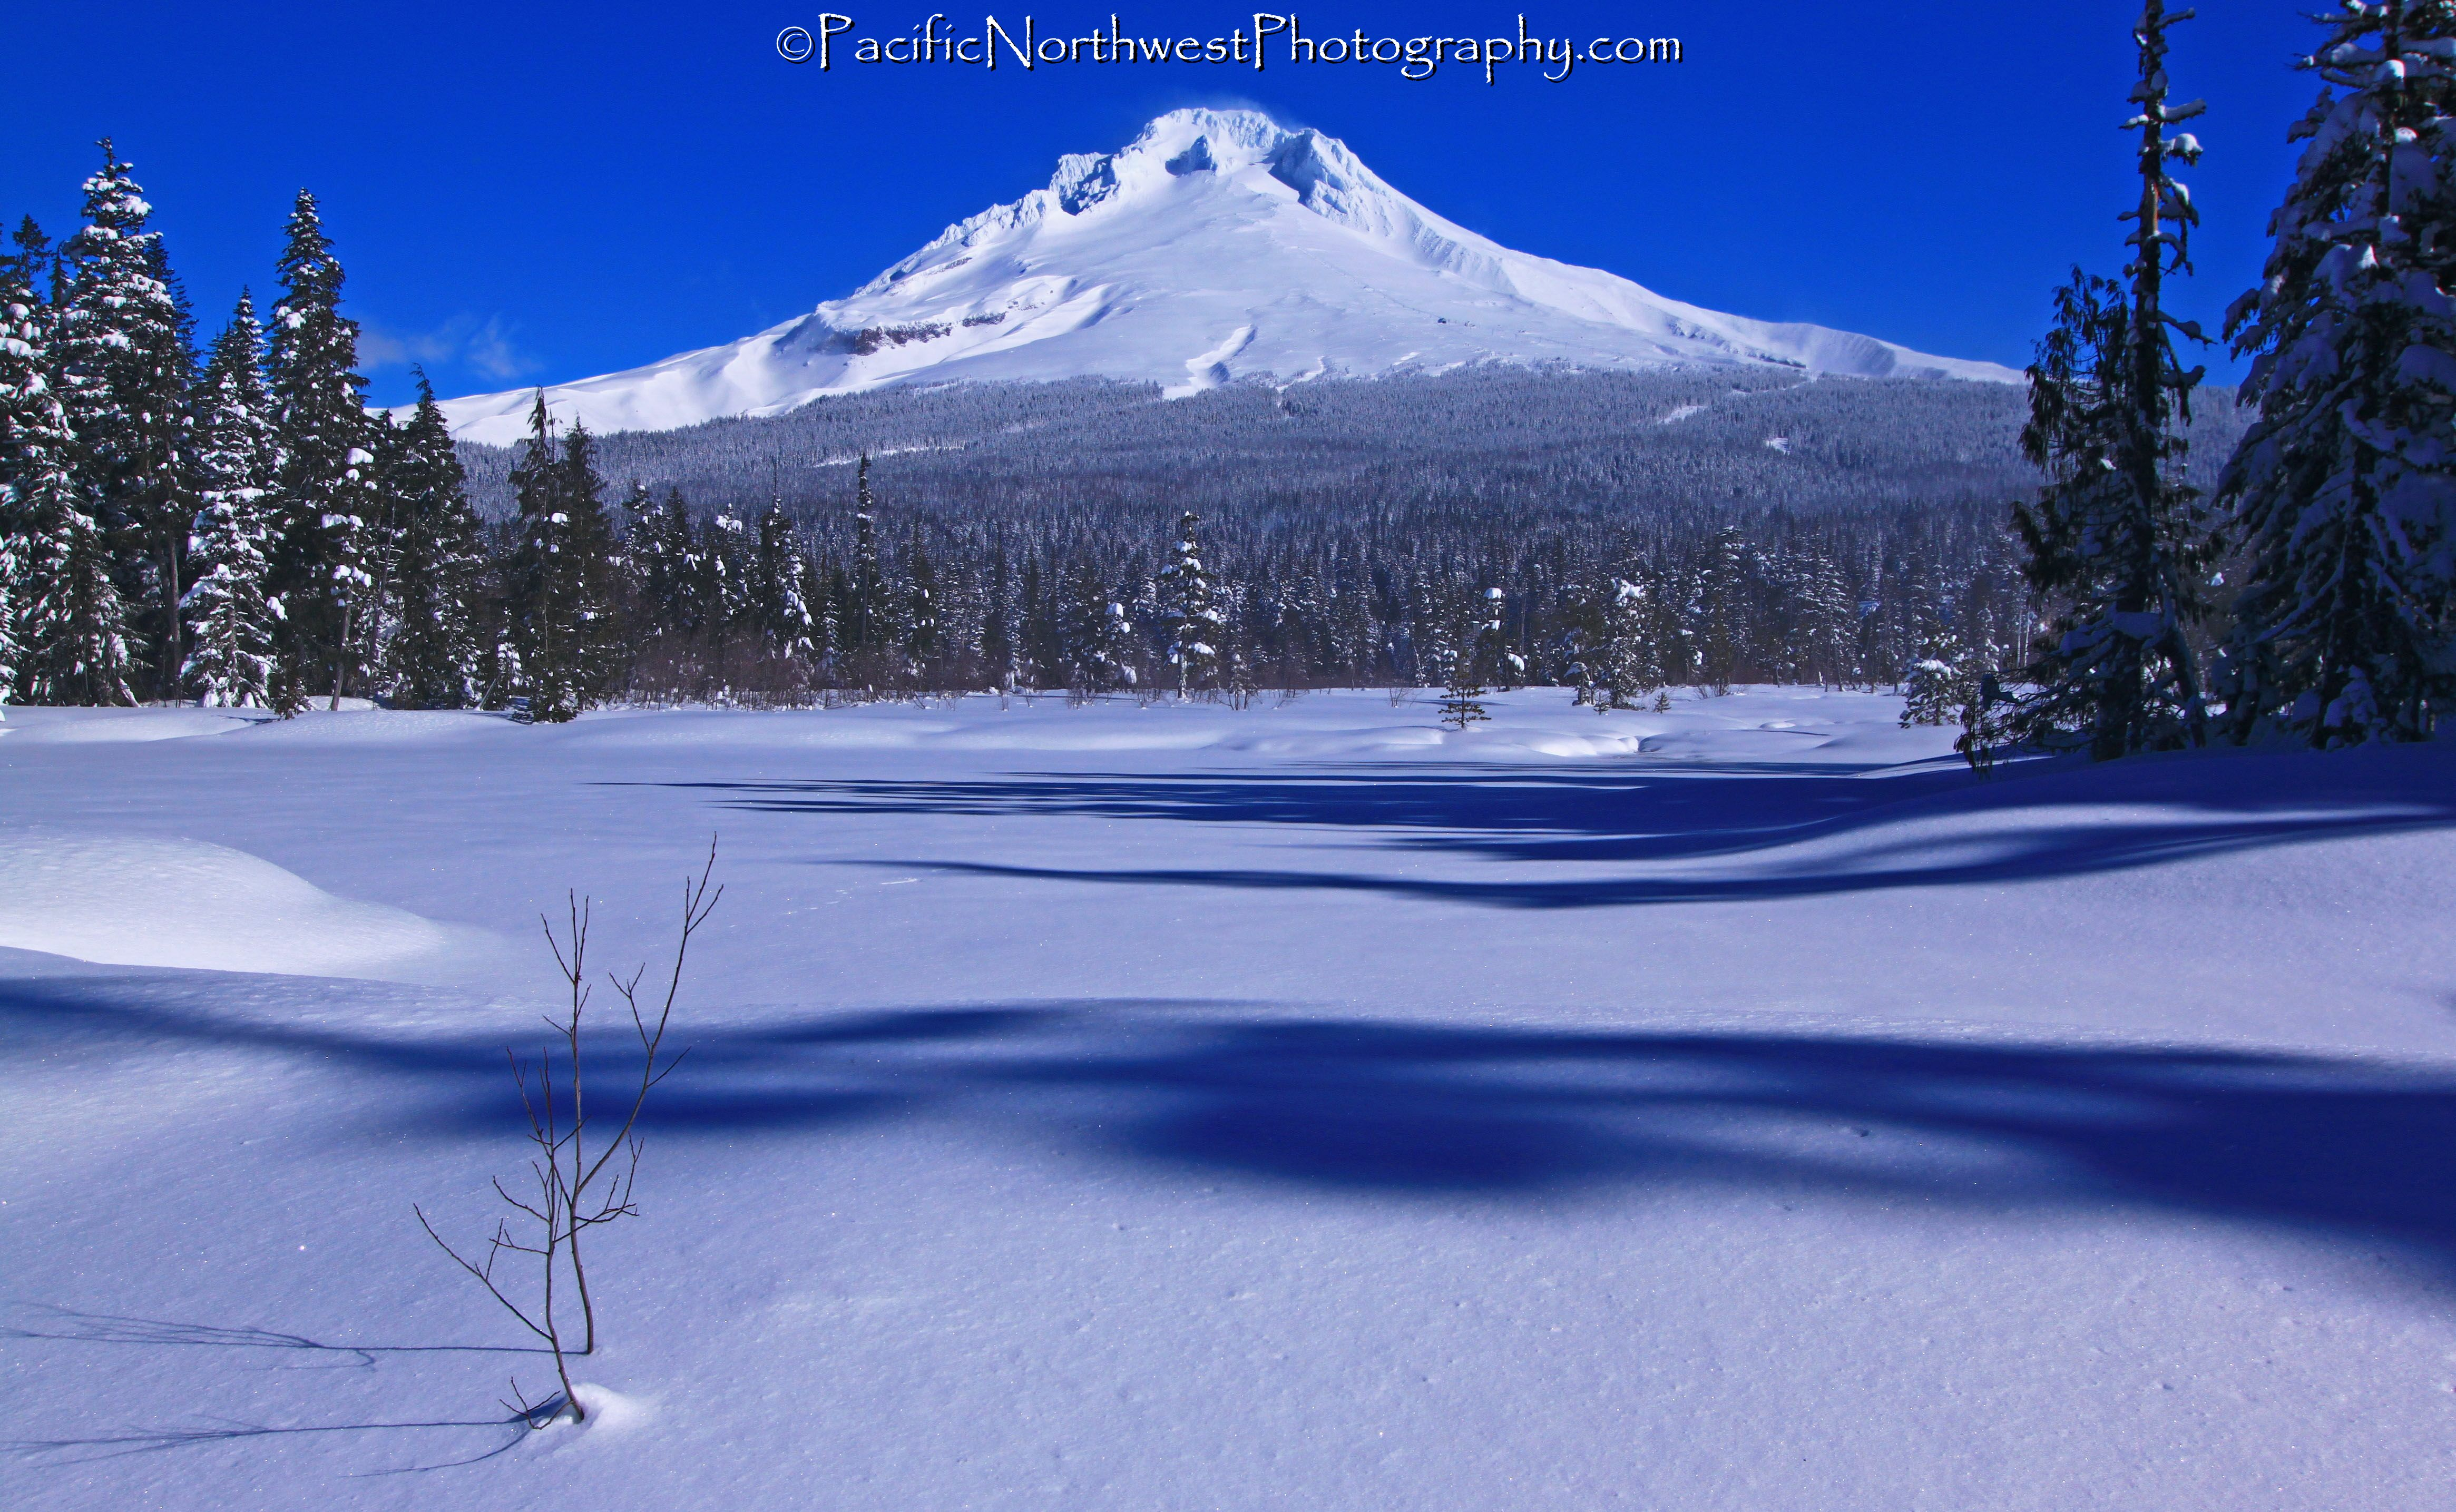 Snow-shoeing near Mt. Hood, OR